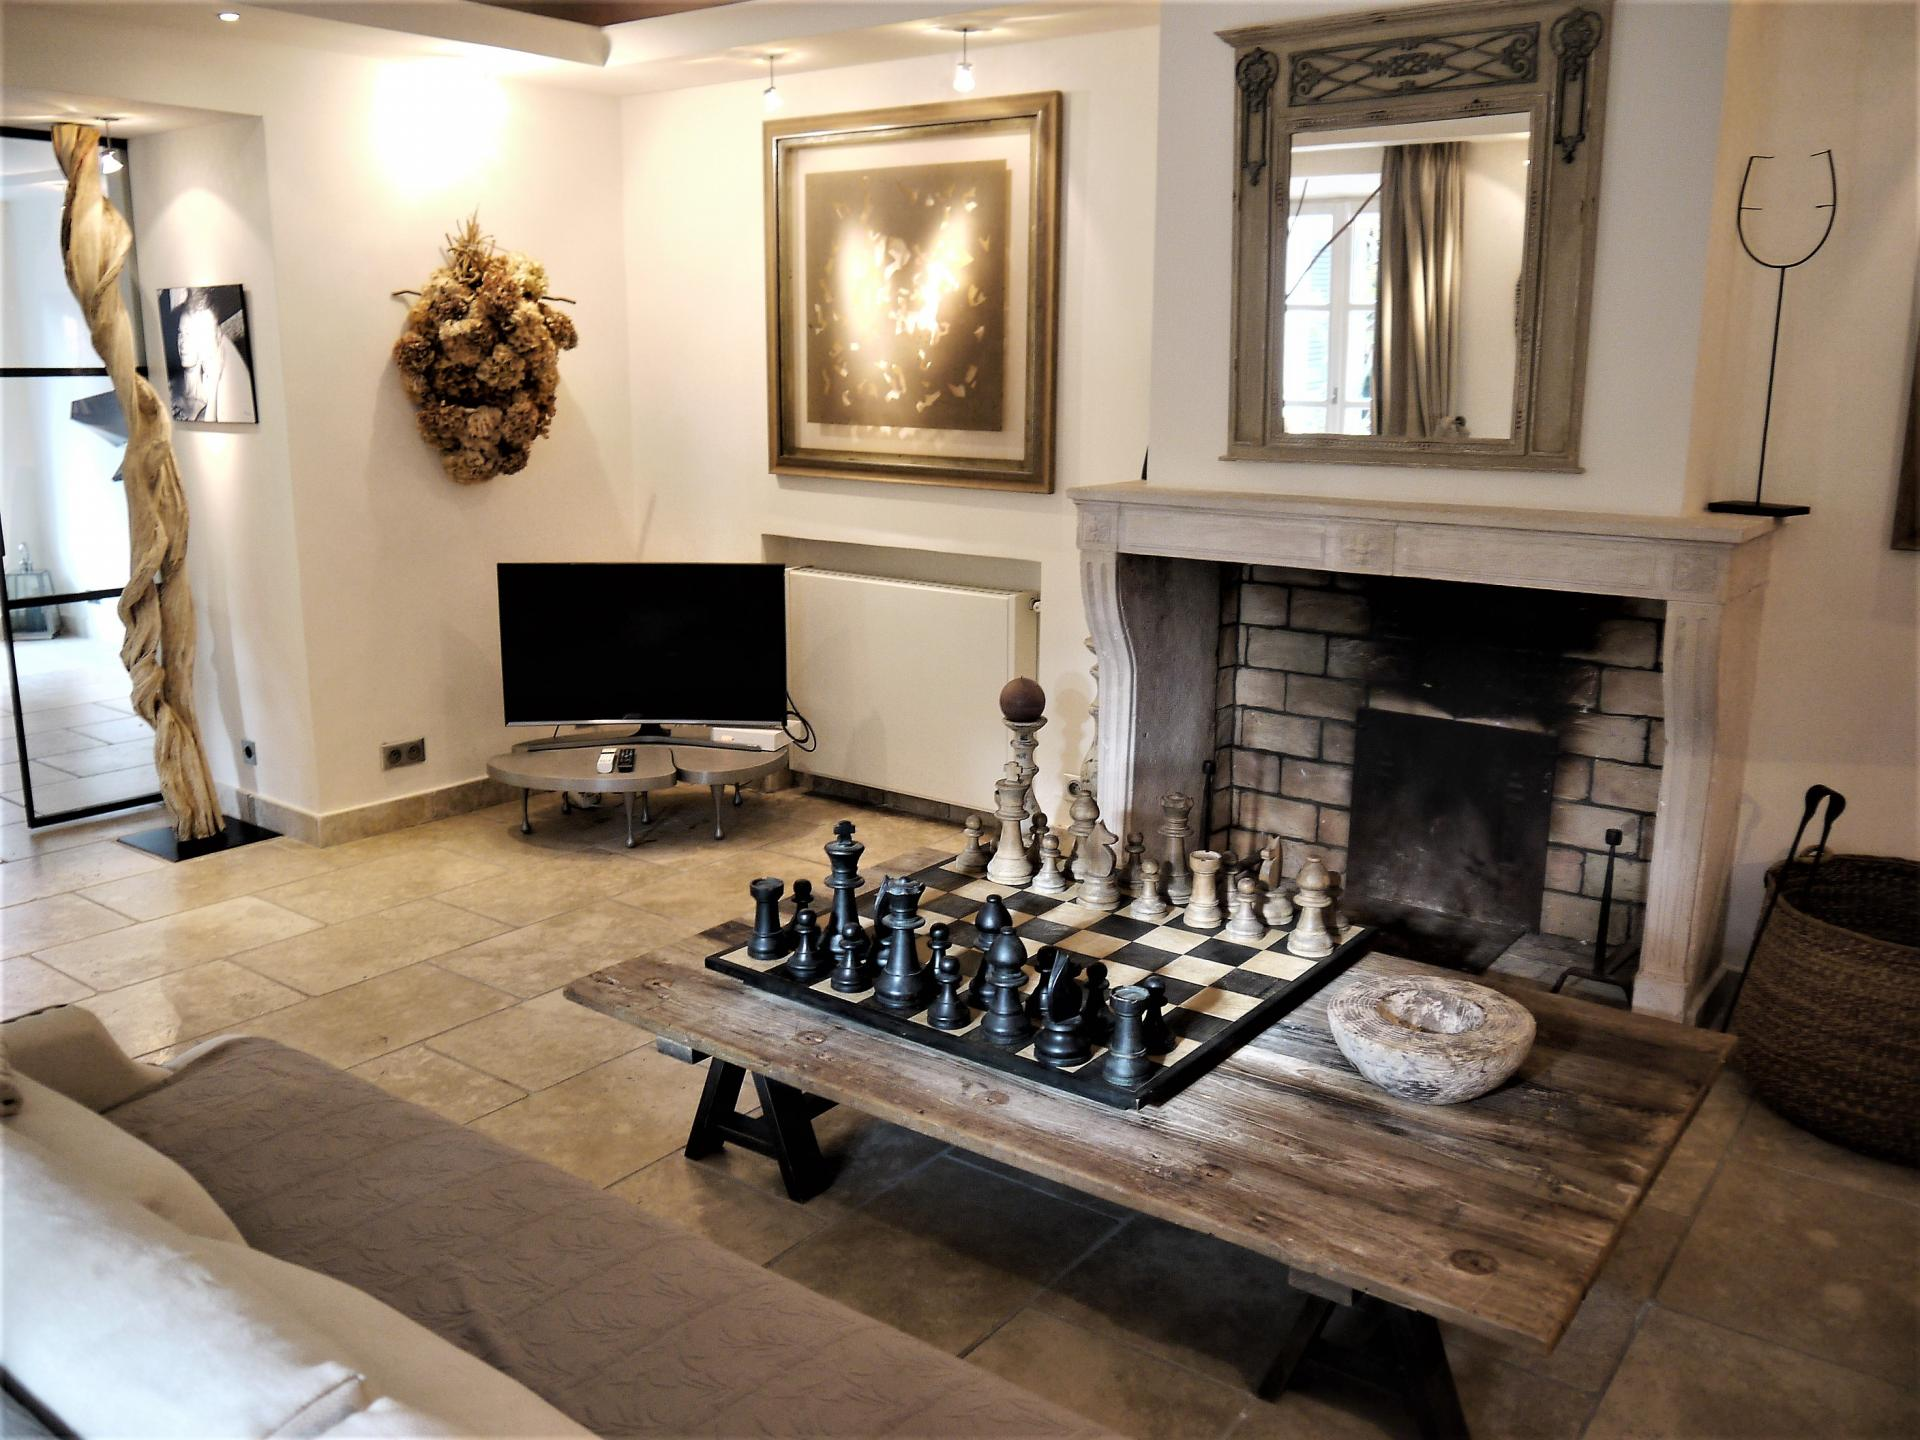 THE FIREPLACE AND A BIG CHEST SET FOR LOVELY EVENINGS IN A VILLA RENTAL IN SAINT TROPEZ